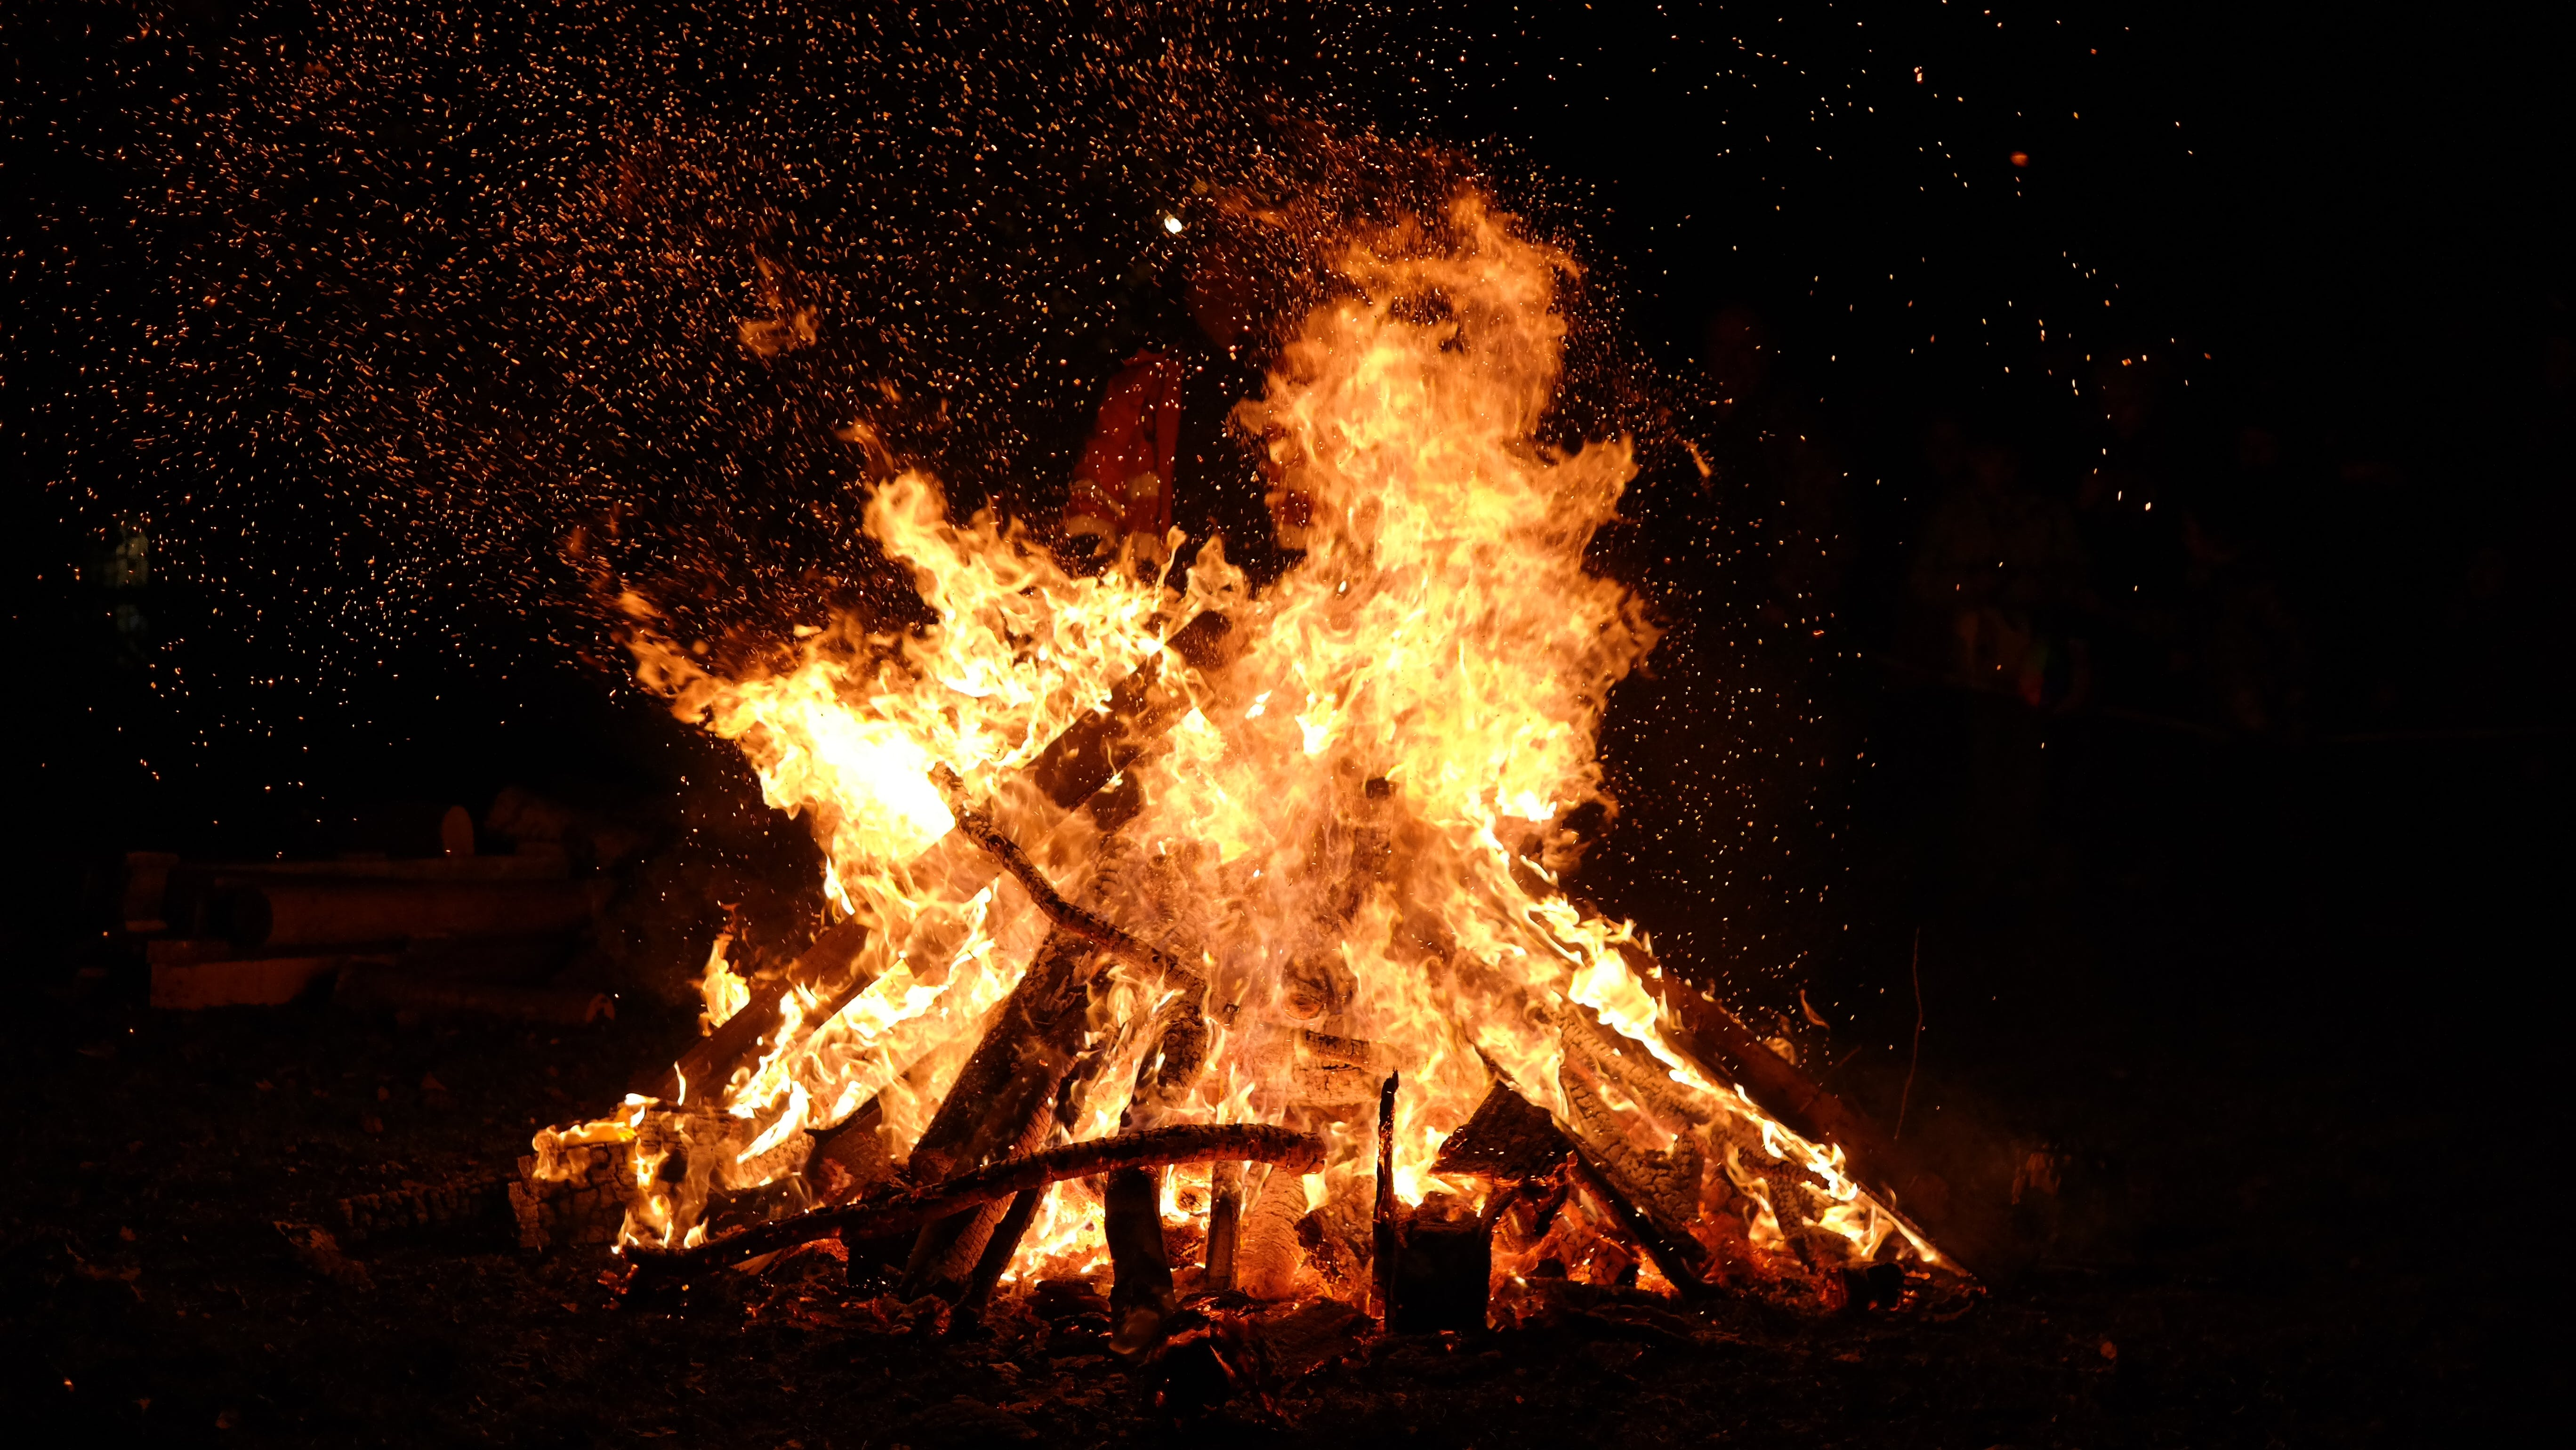 Bonfire Photo